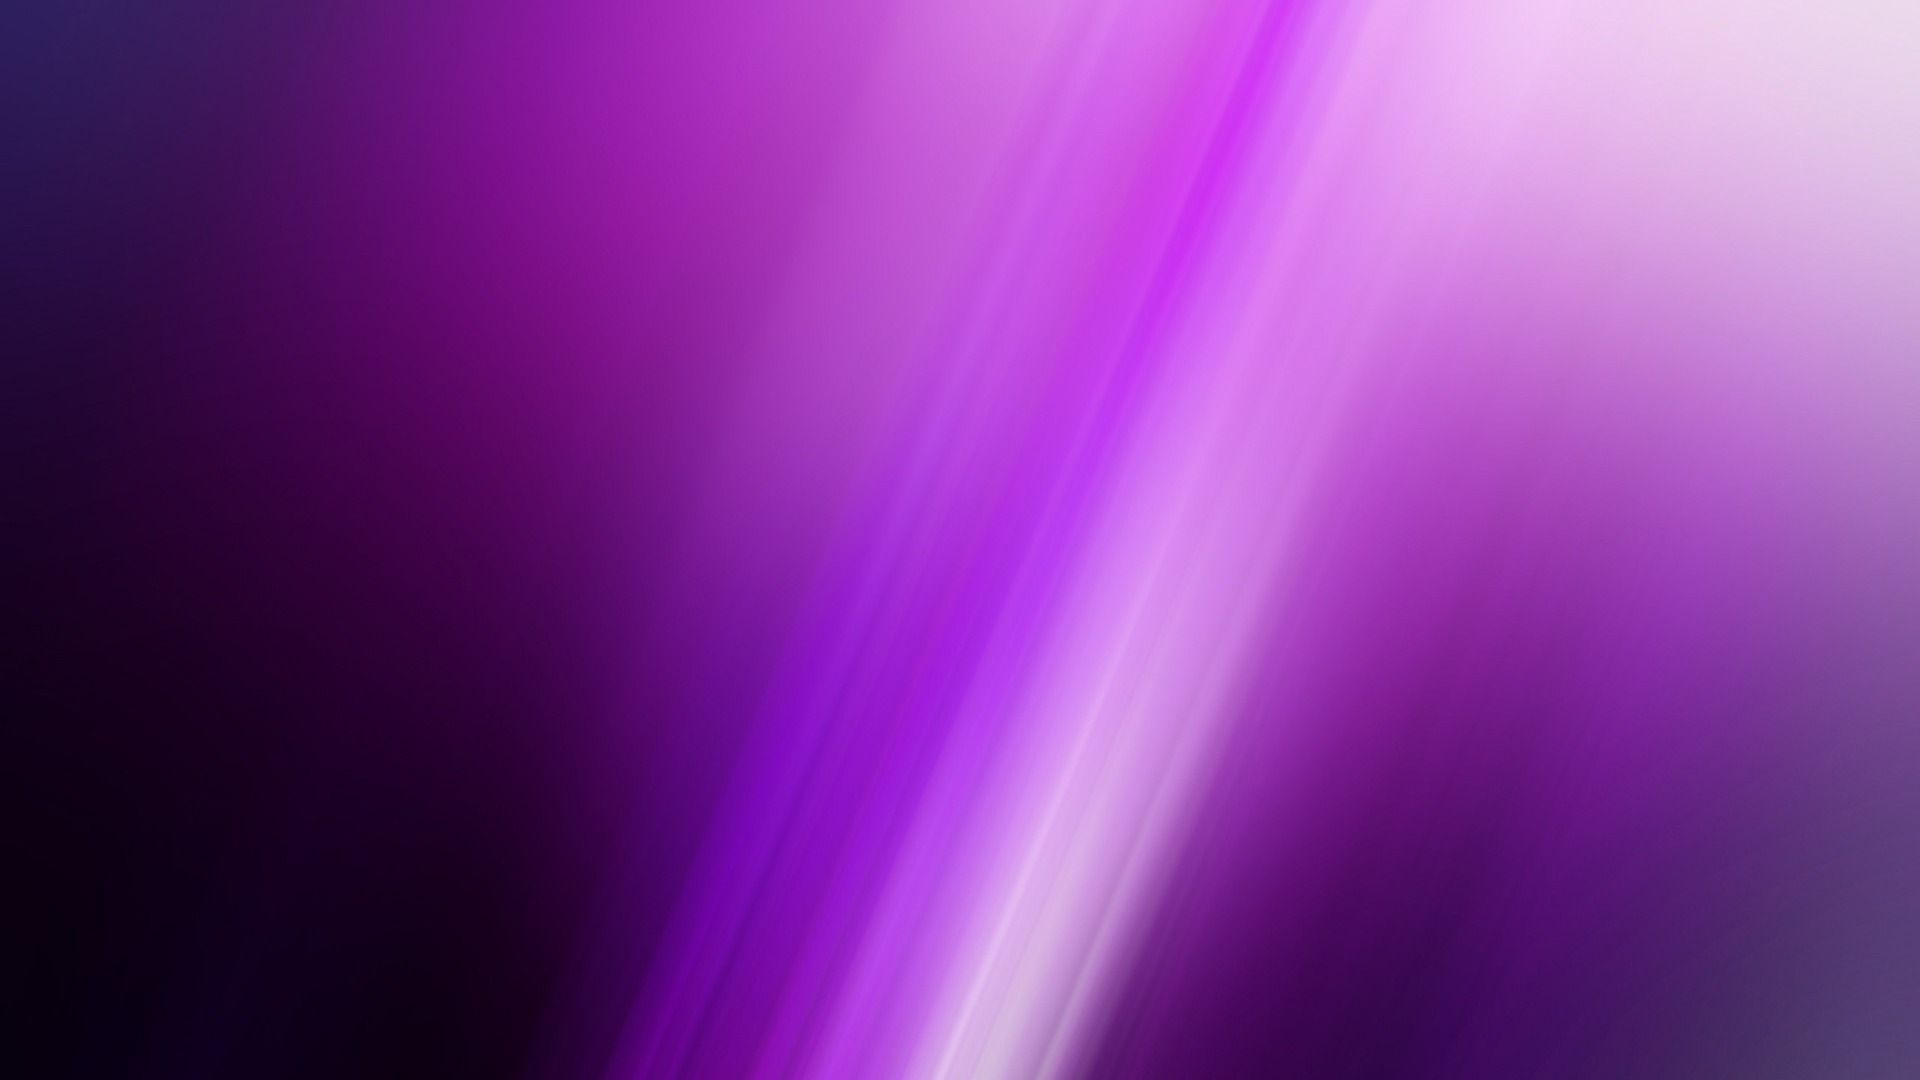 Purple And White wallpaper and themes